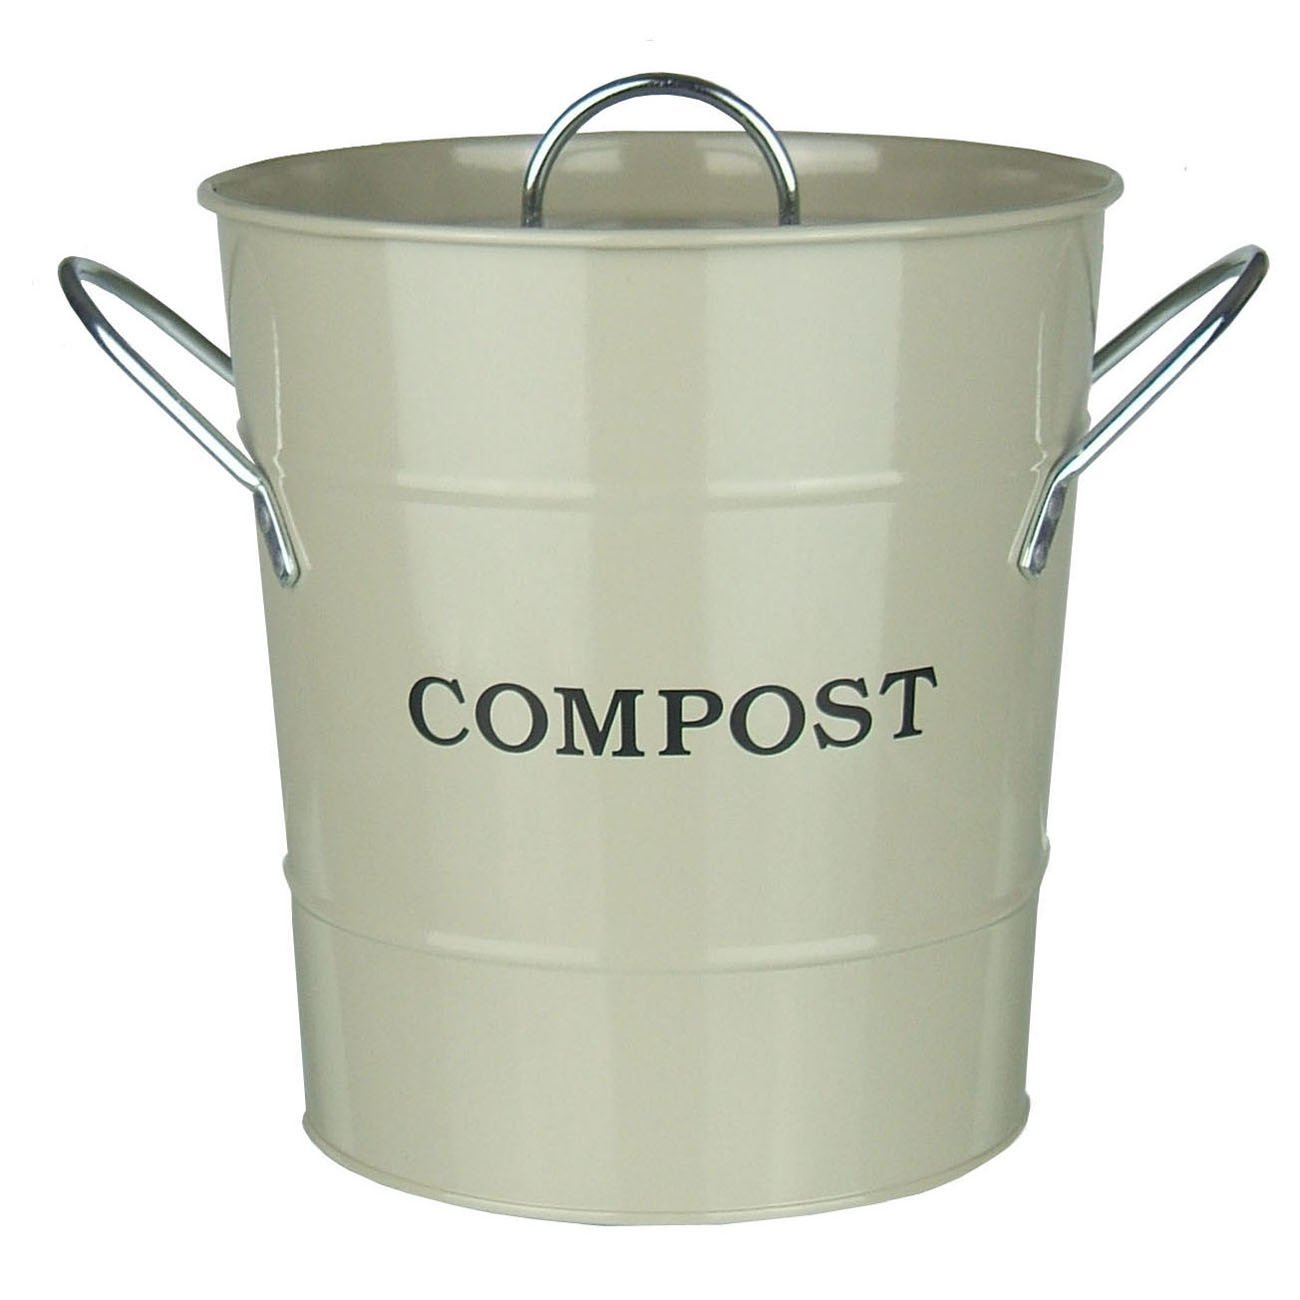 Metal Kitchen Compost Caddy (Clay Colour) U0026 Composting Guide   Composting  Bin For Food Waste Recycling: Amazon.co.uk: Kitchen U0026 Home